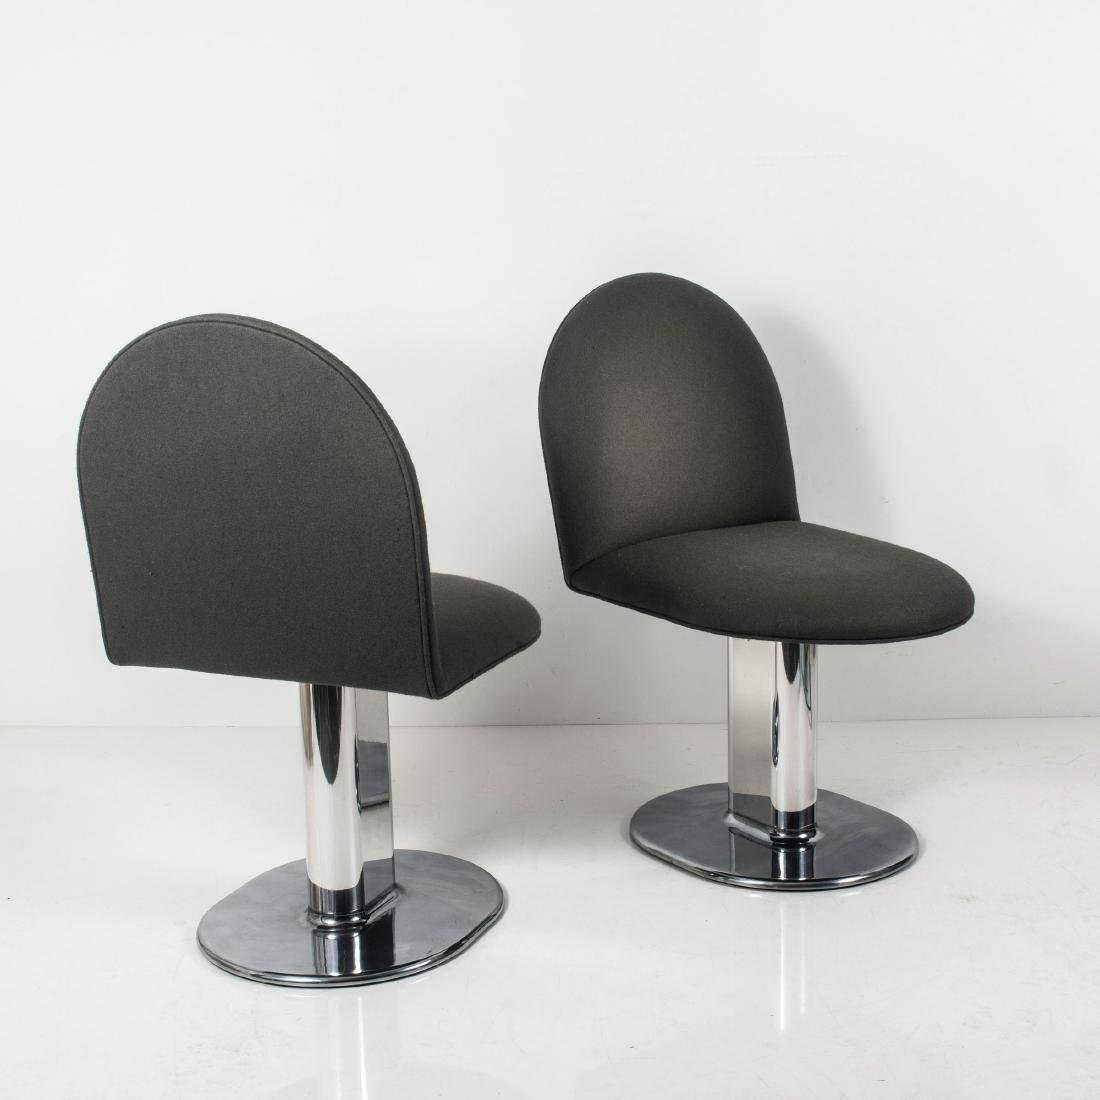 Two 'Harlow' chairs, 1971 - 2